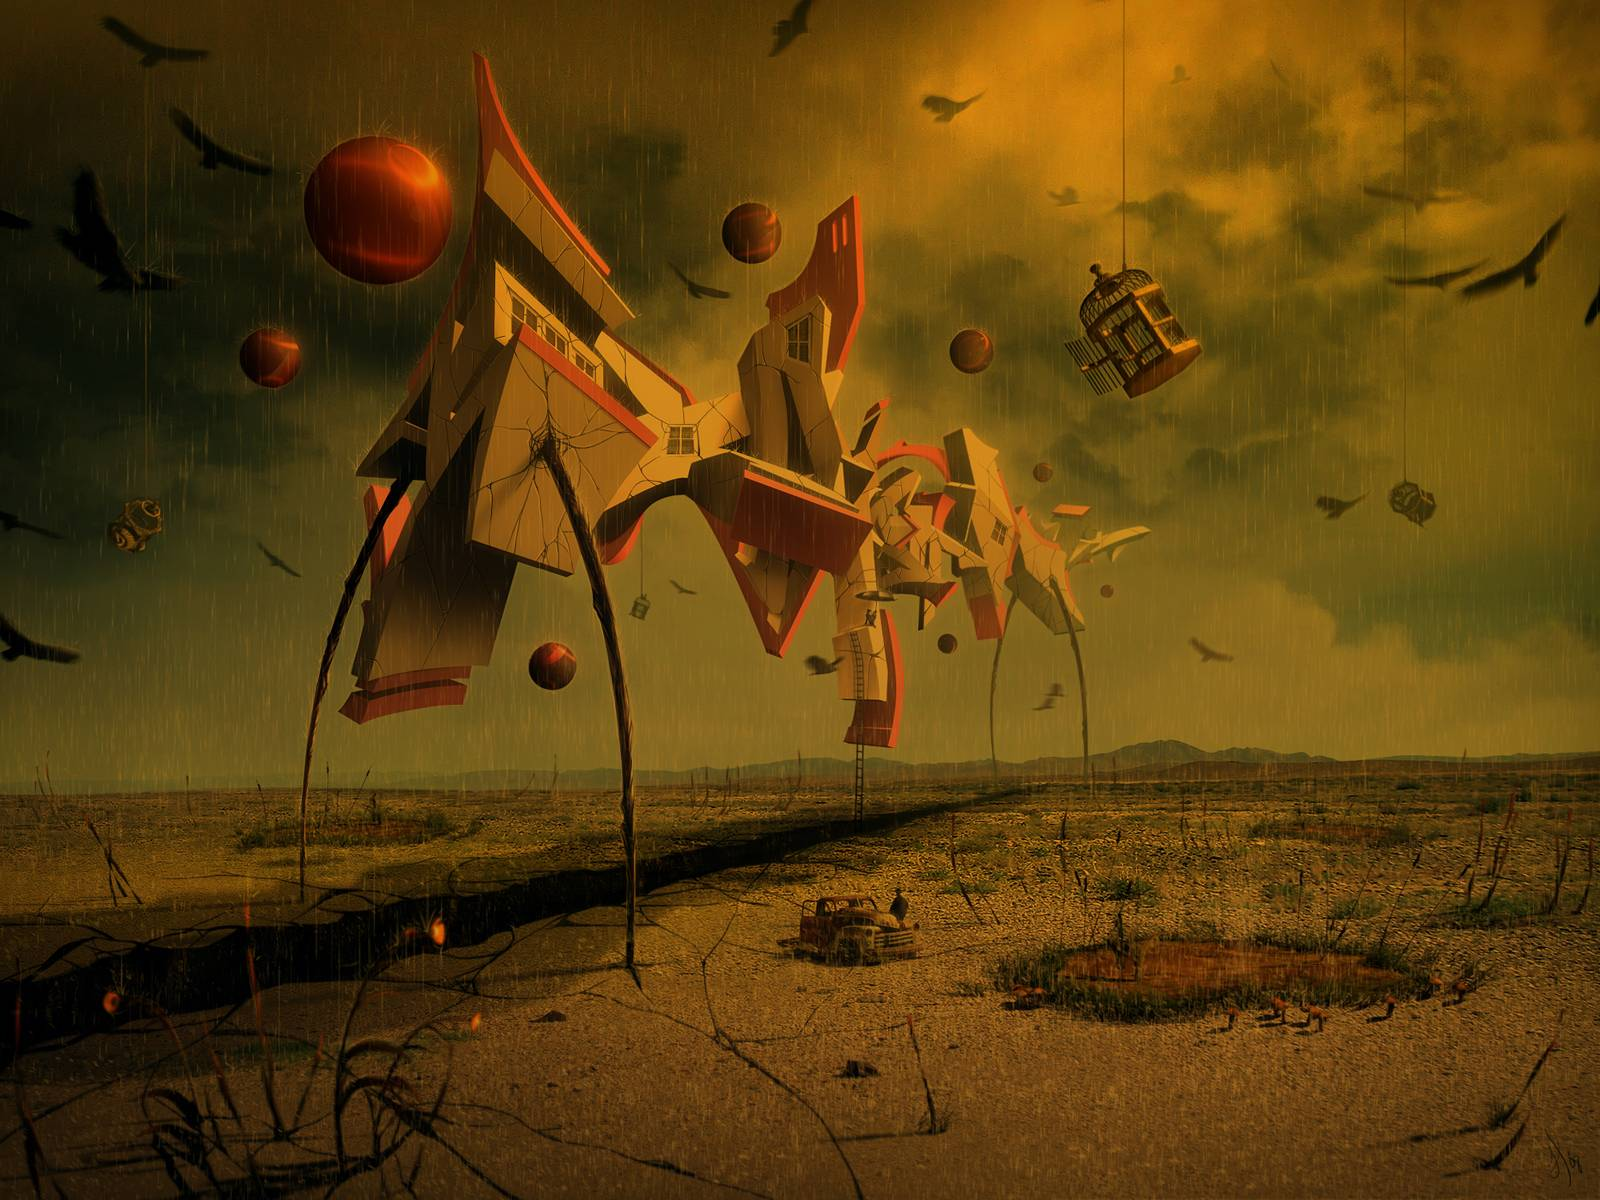 Surreal Art Wallpapers 2223 Download Free HD Desktop Backgrounds